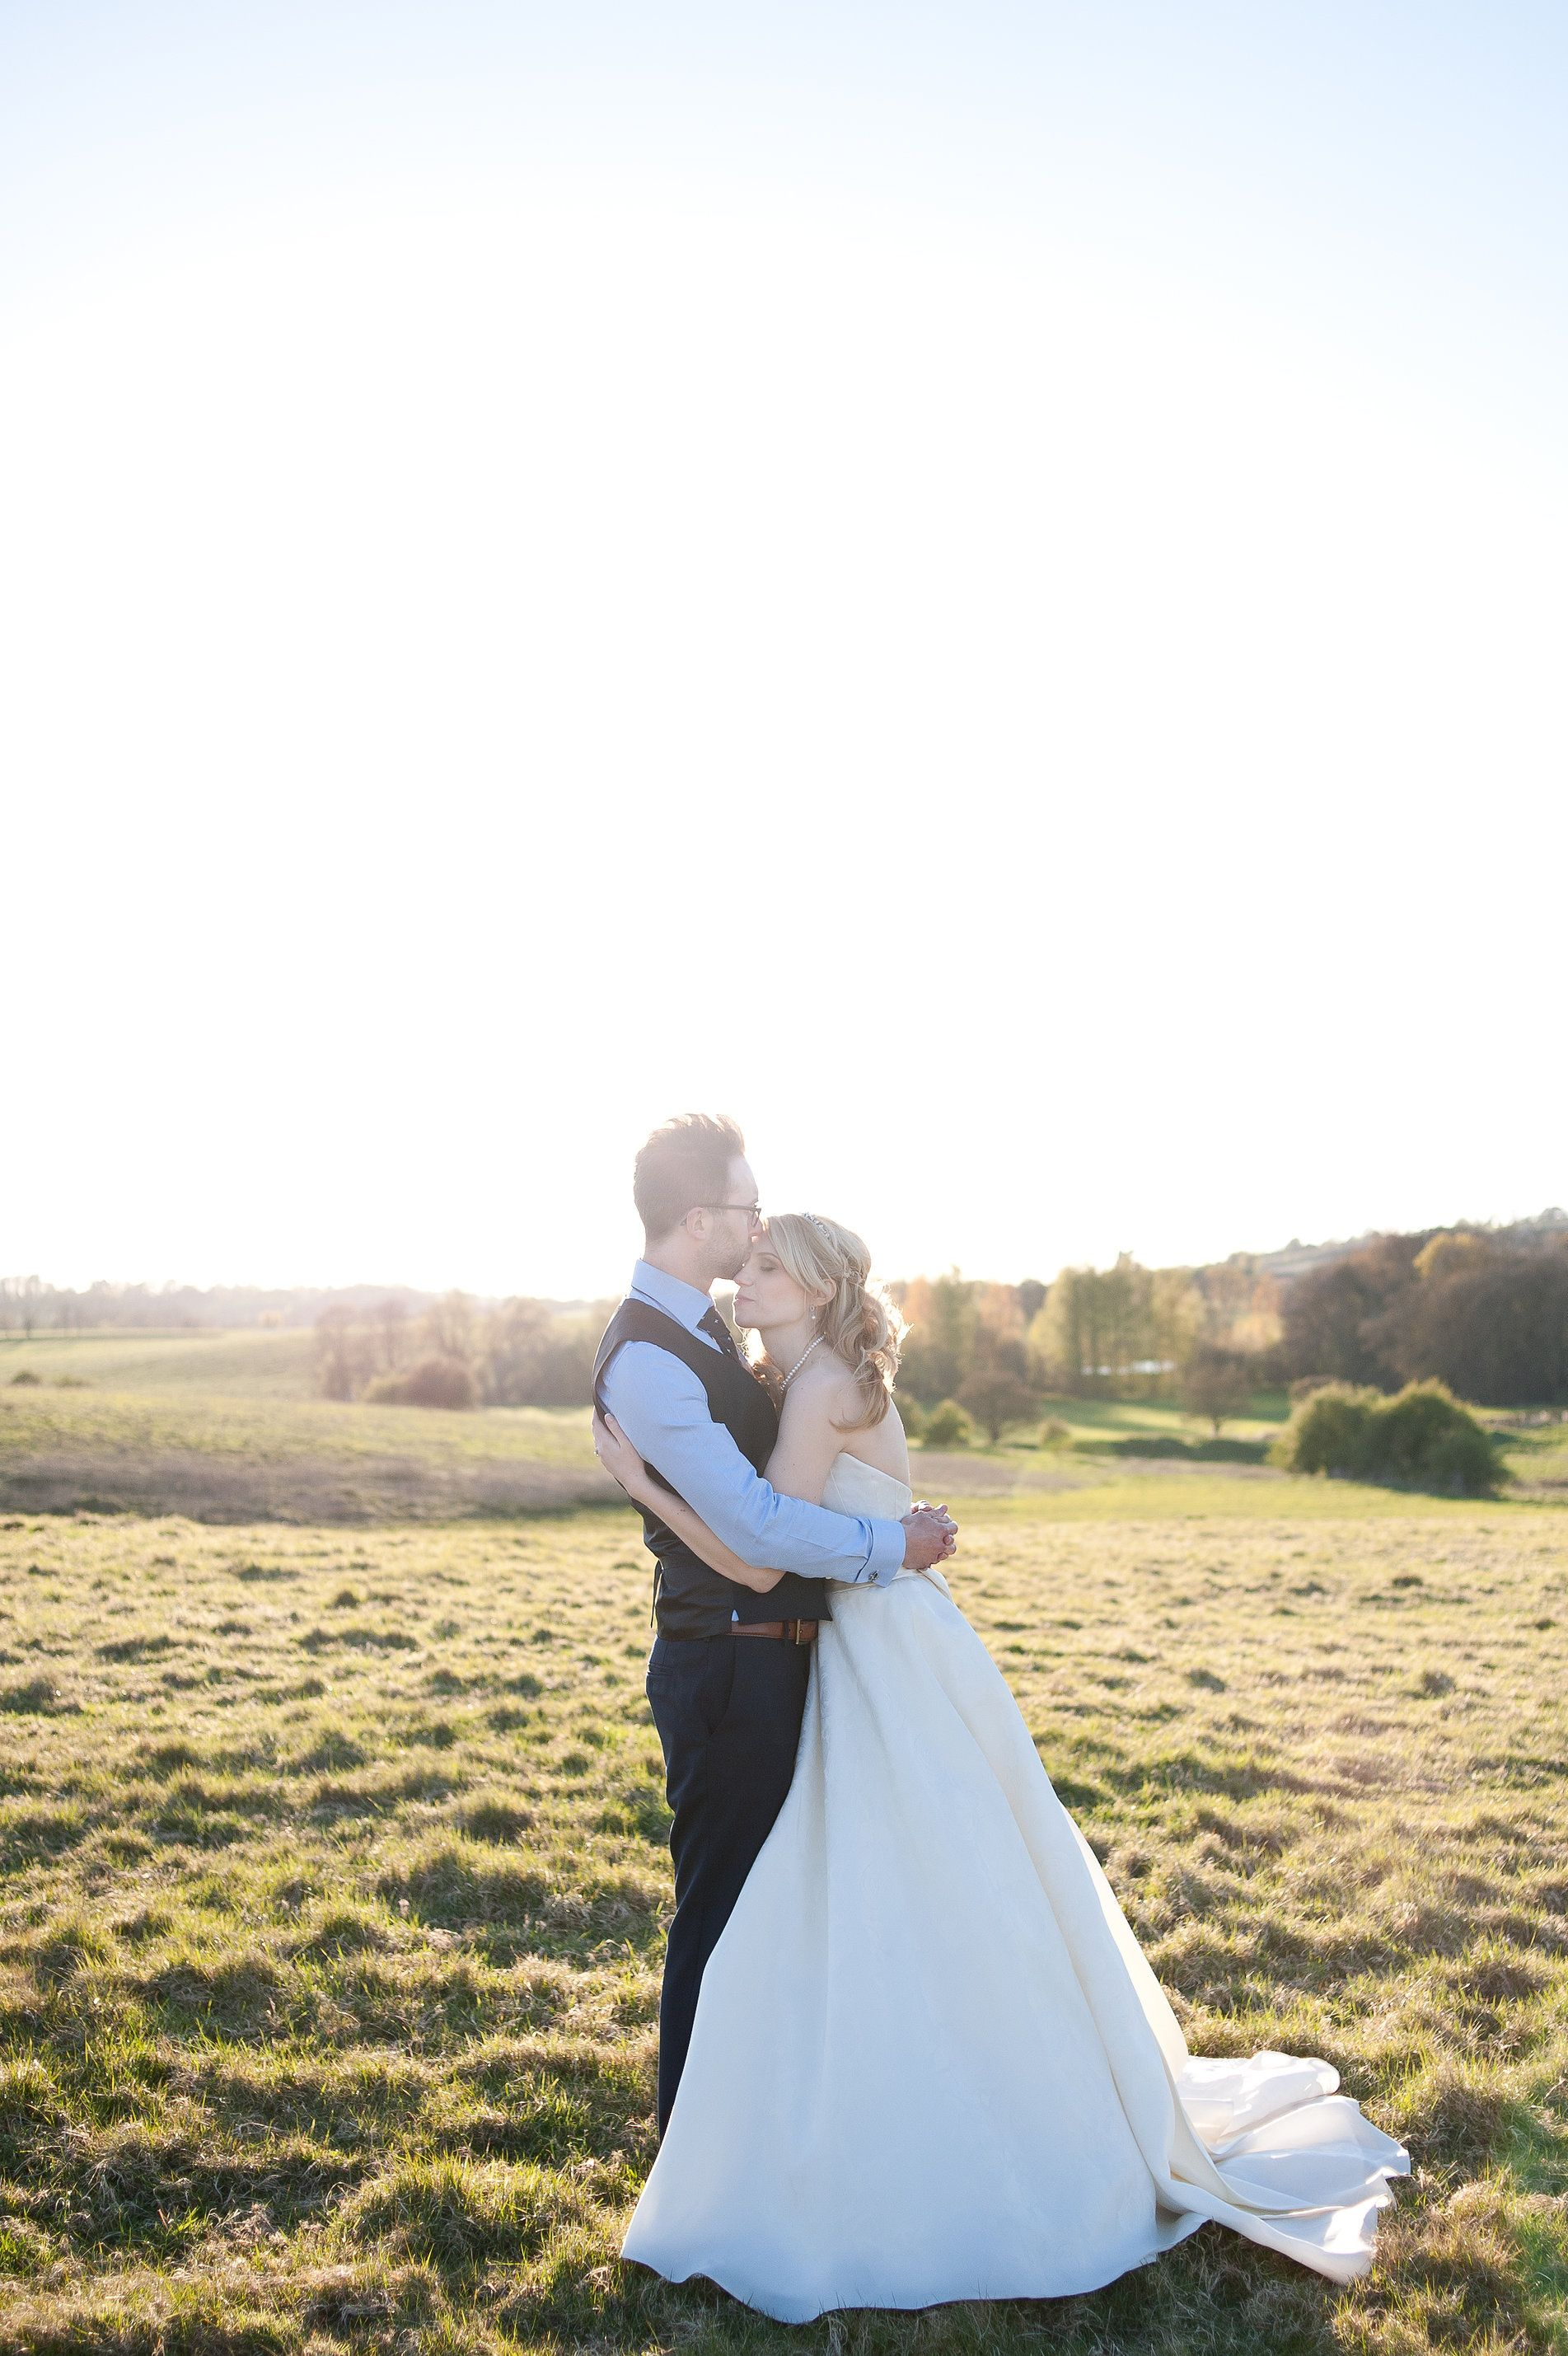 Bride in sassi holford dress in field at sunset for classic english